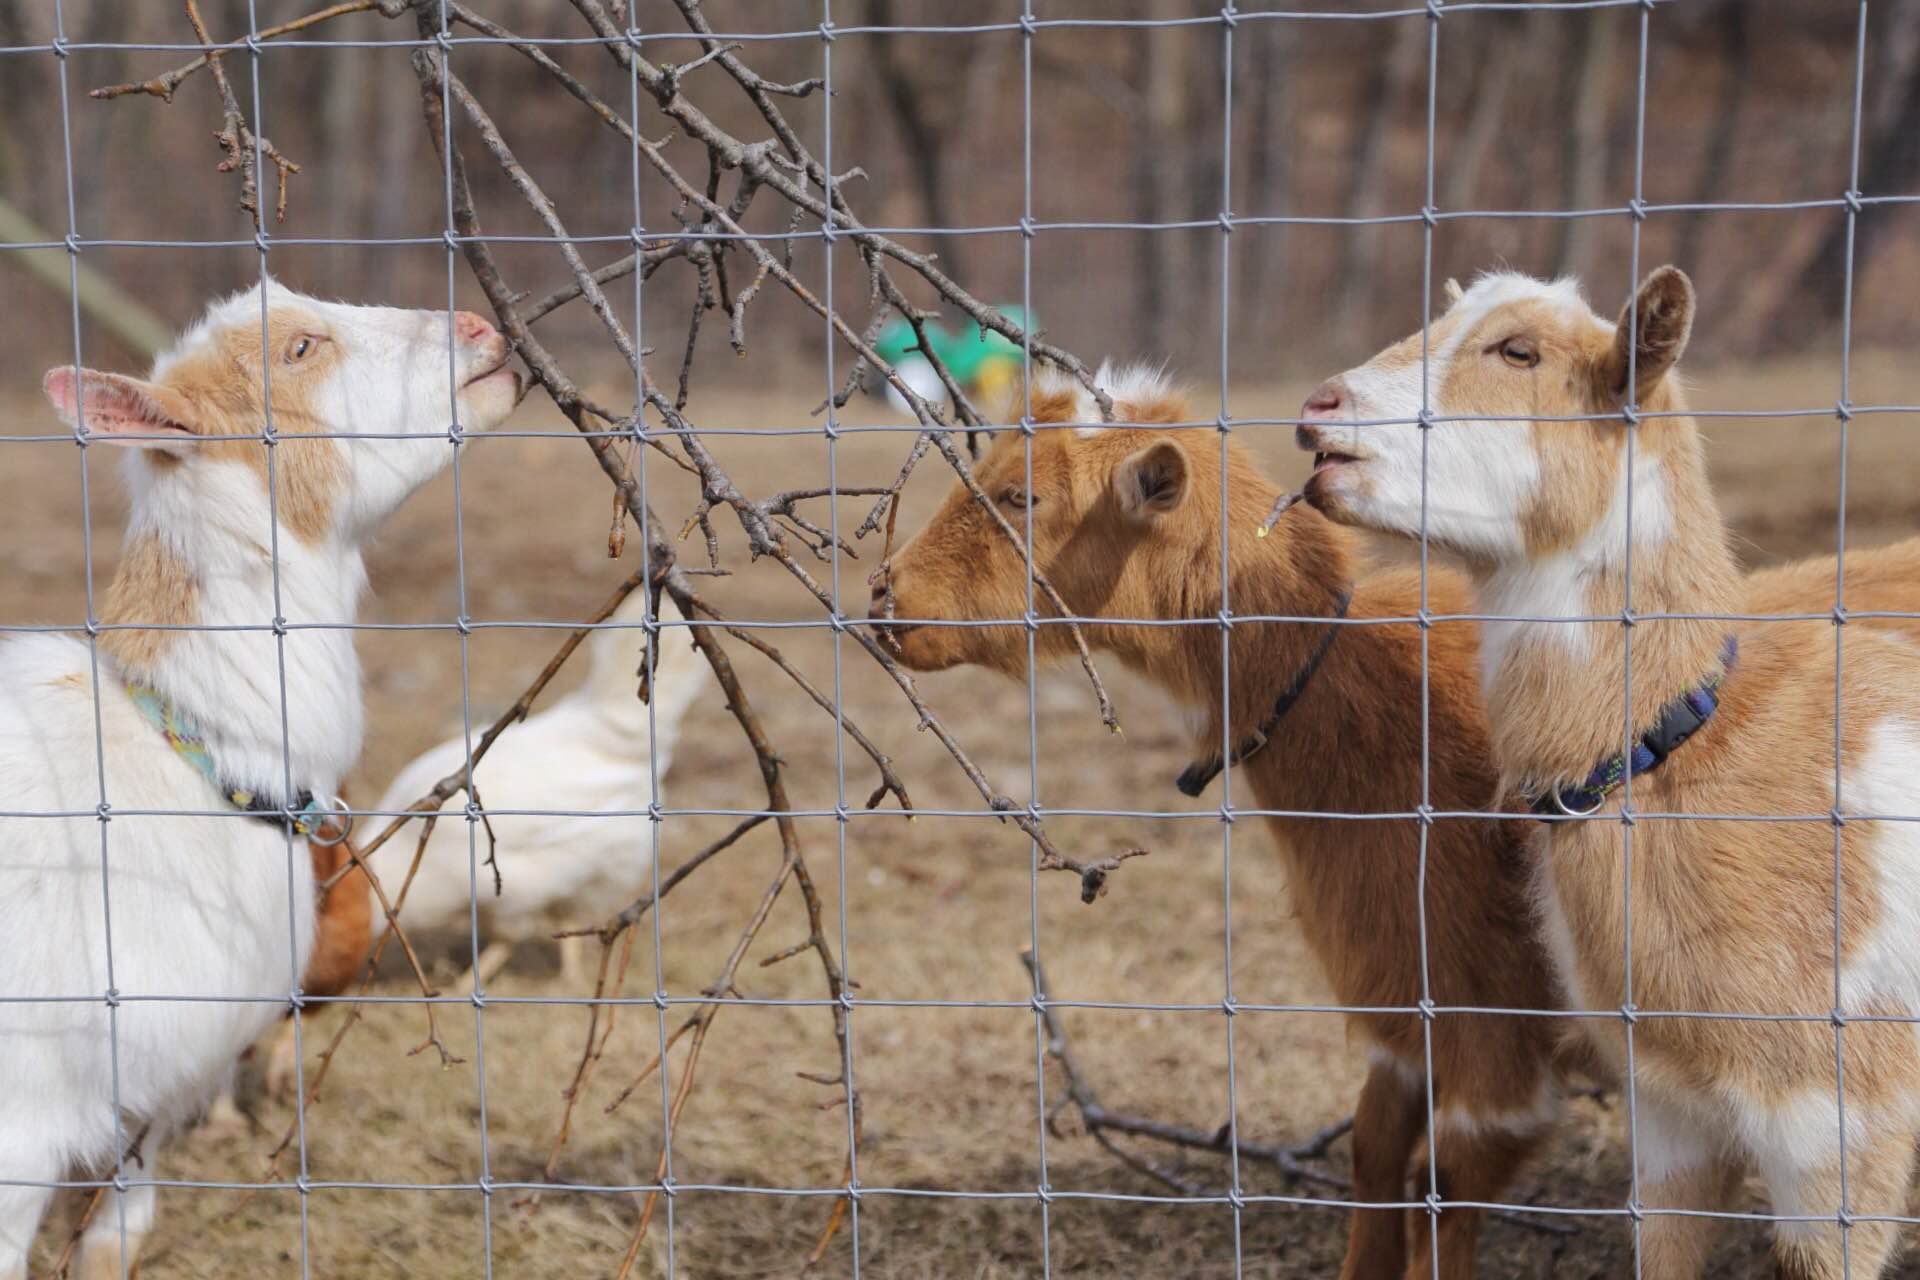 The goats enjoying a tasty treat of pear tree trimmings.